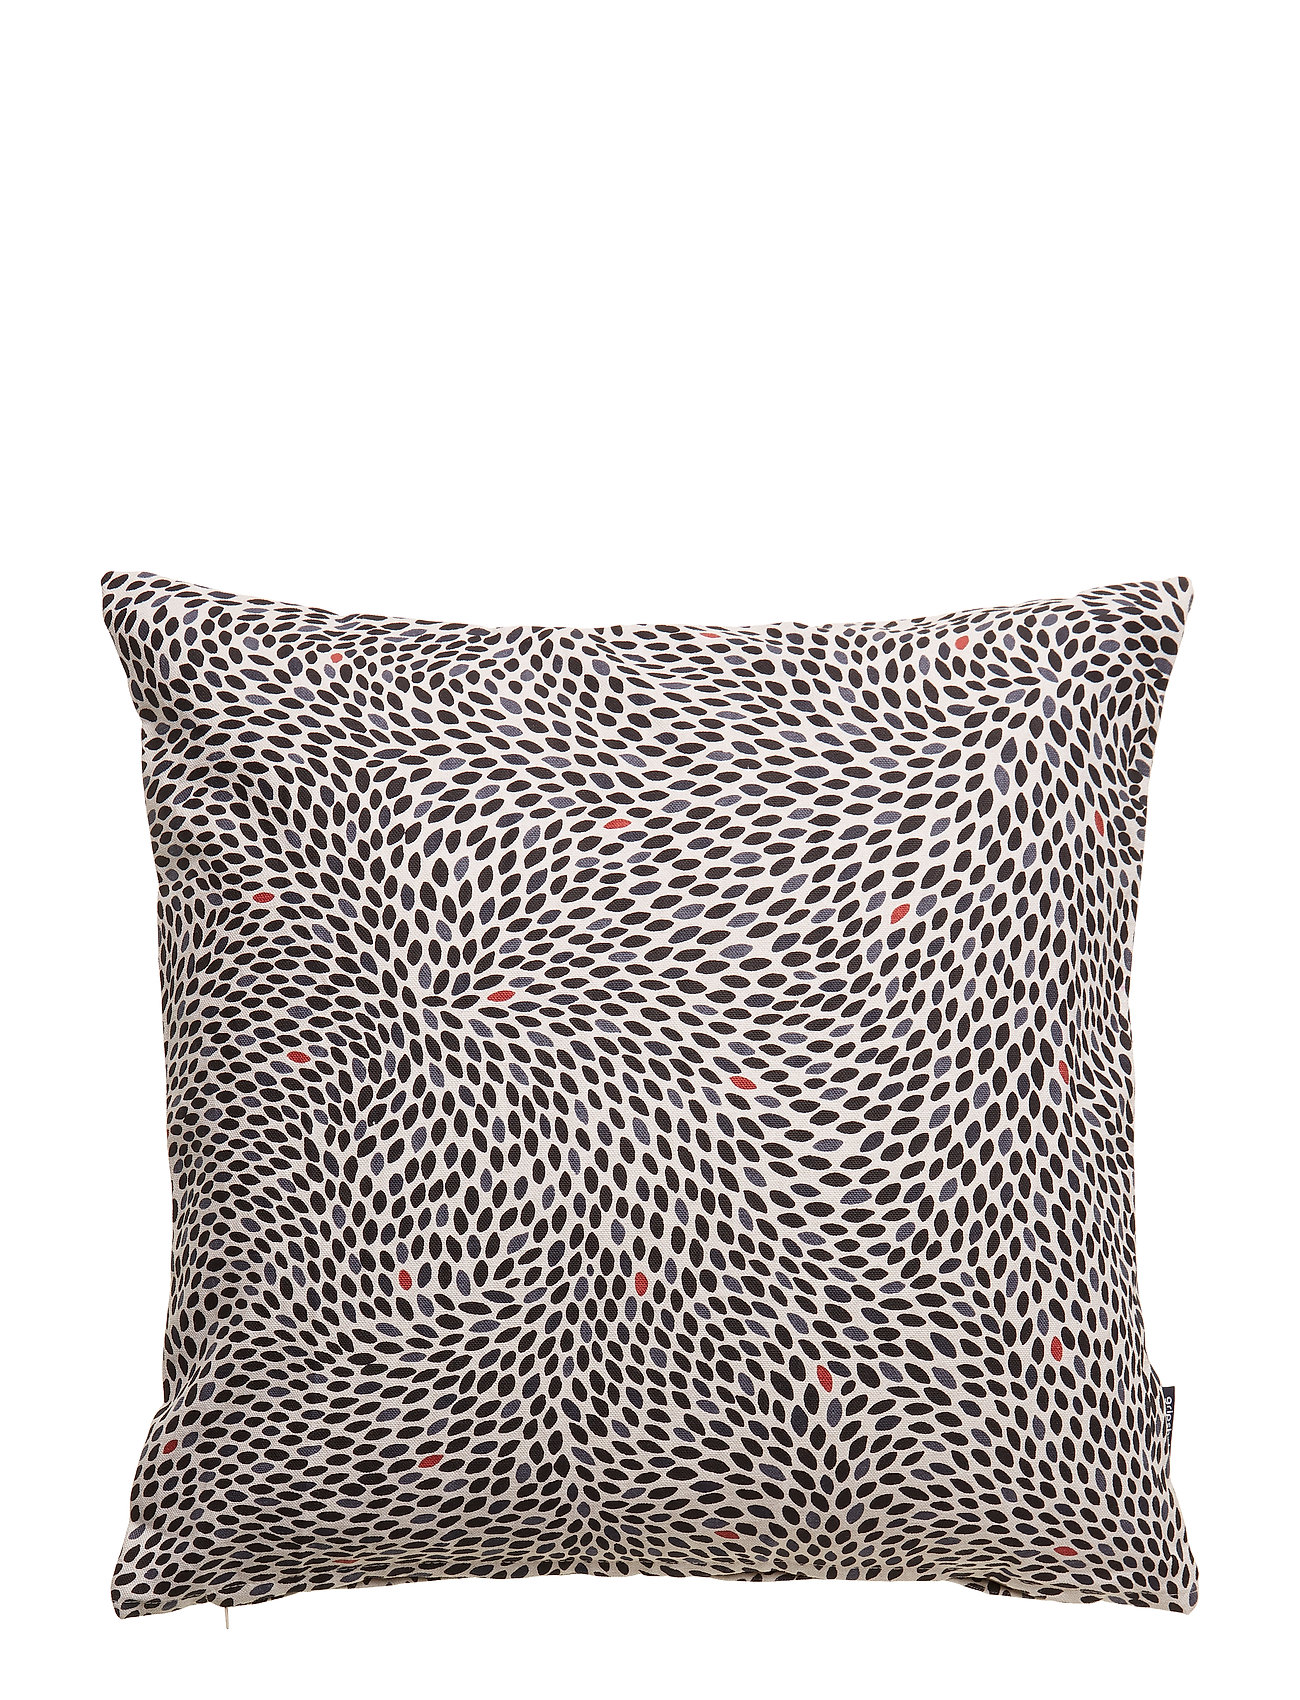 Gripsholm CUSHION COVER LOVIS - LUNAR ROCK